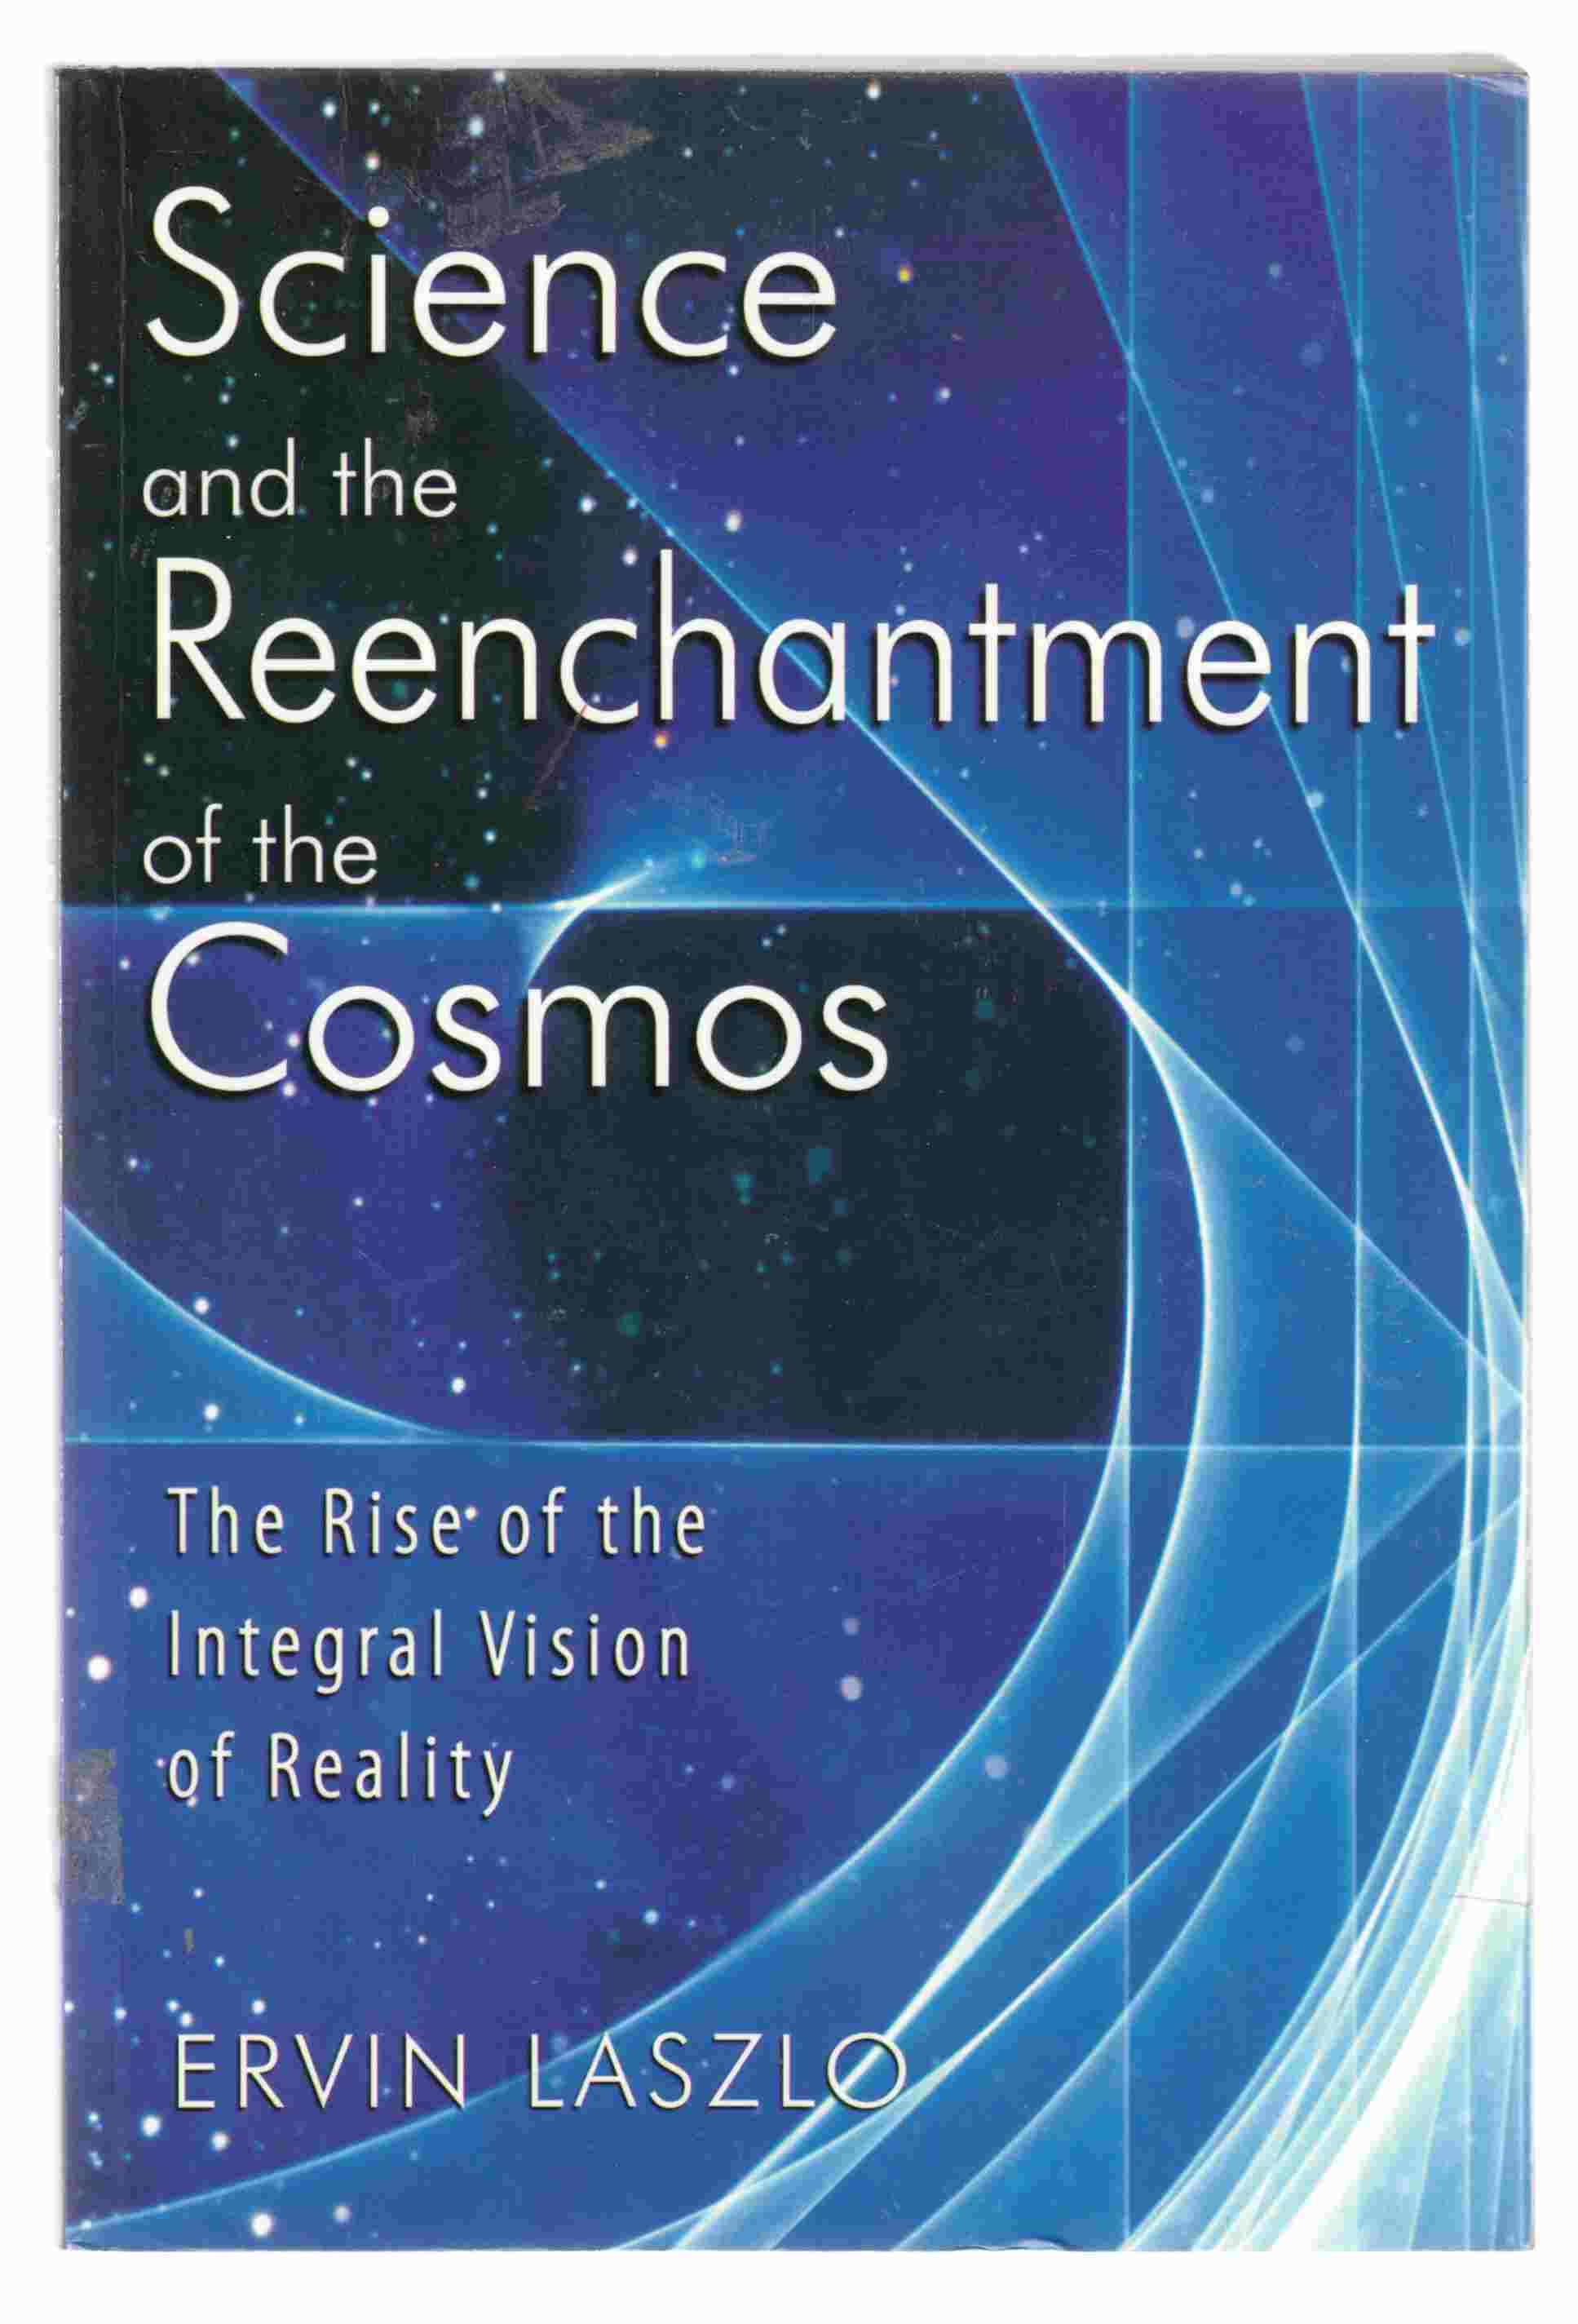 Image for Science and the Reenchantment of the Cosmos The Rise of the Integral Vision of Reality